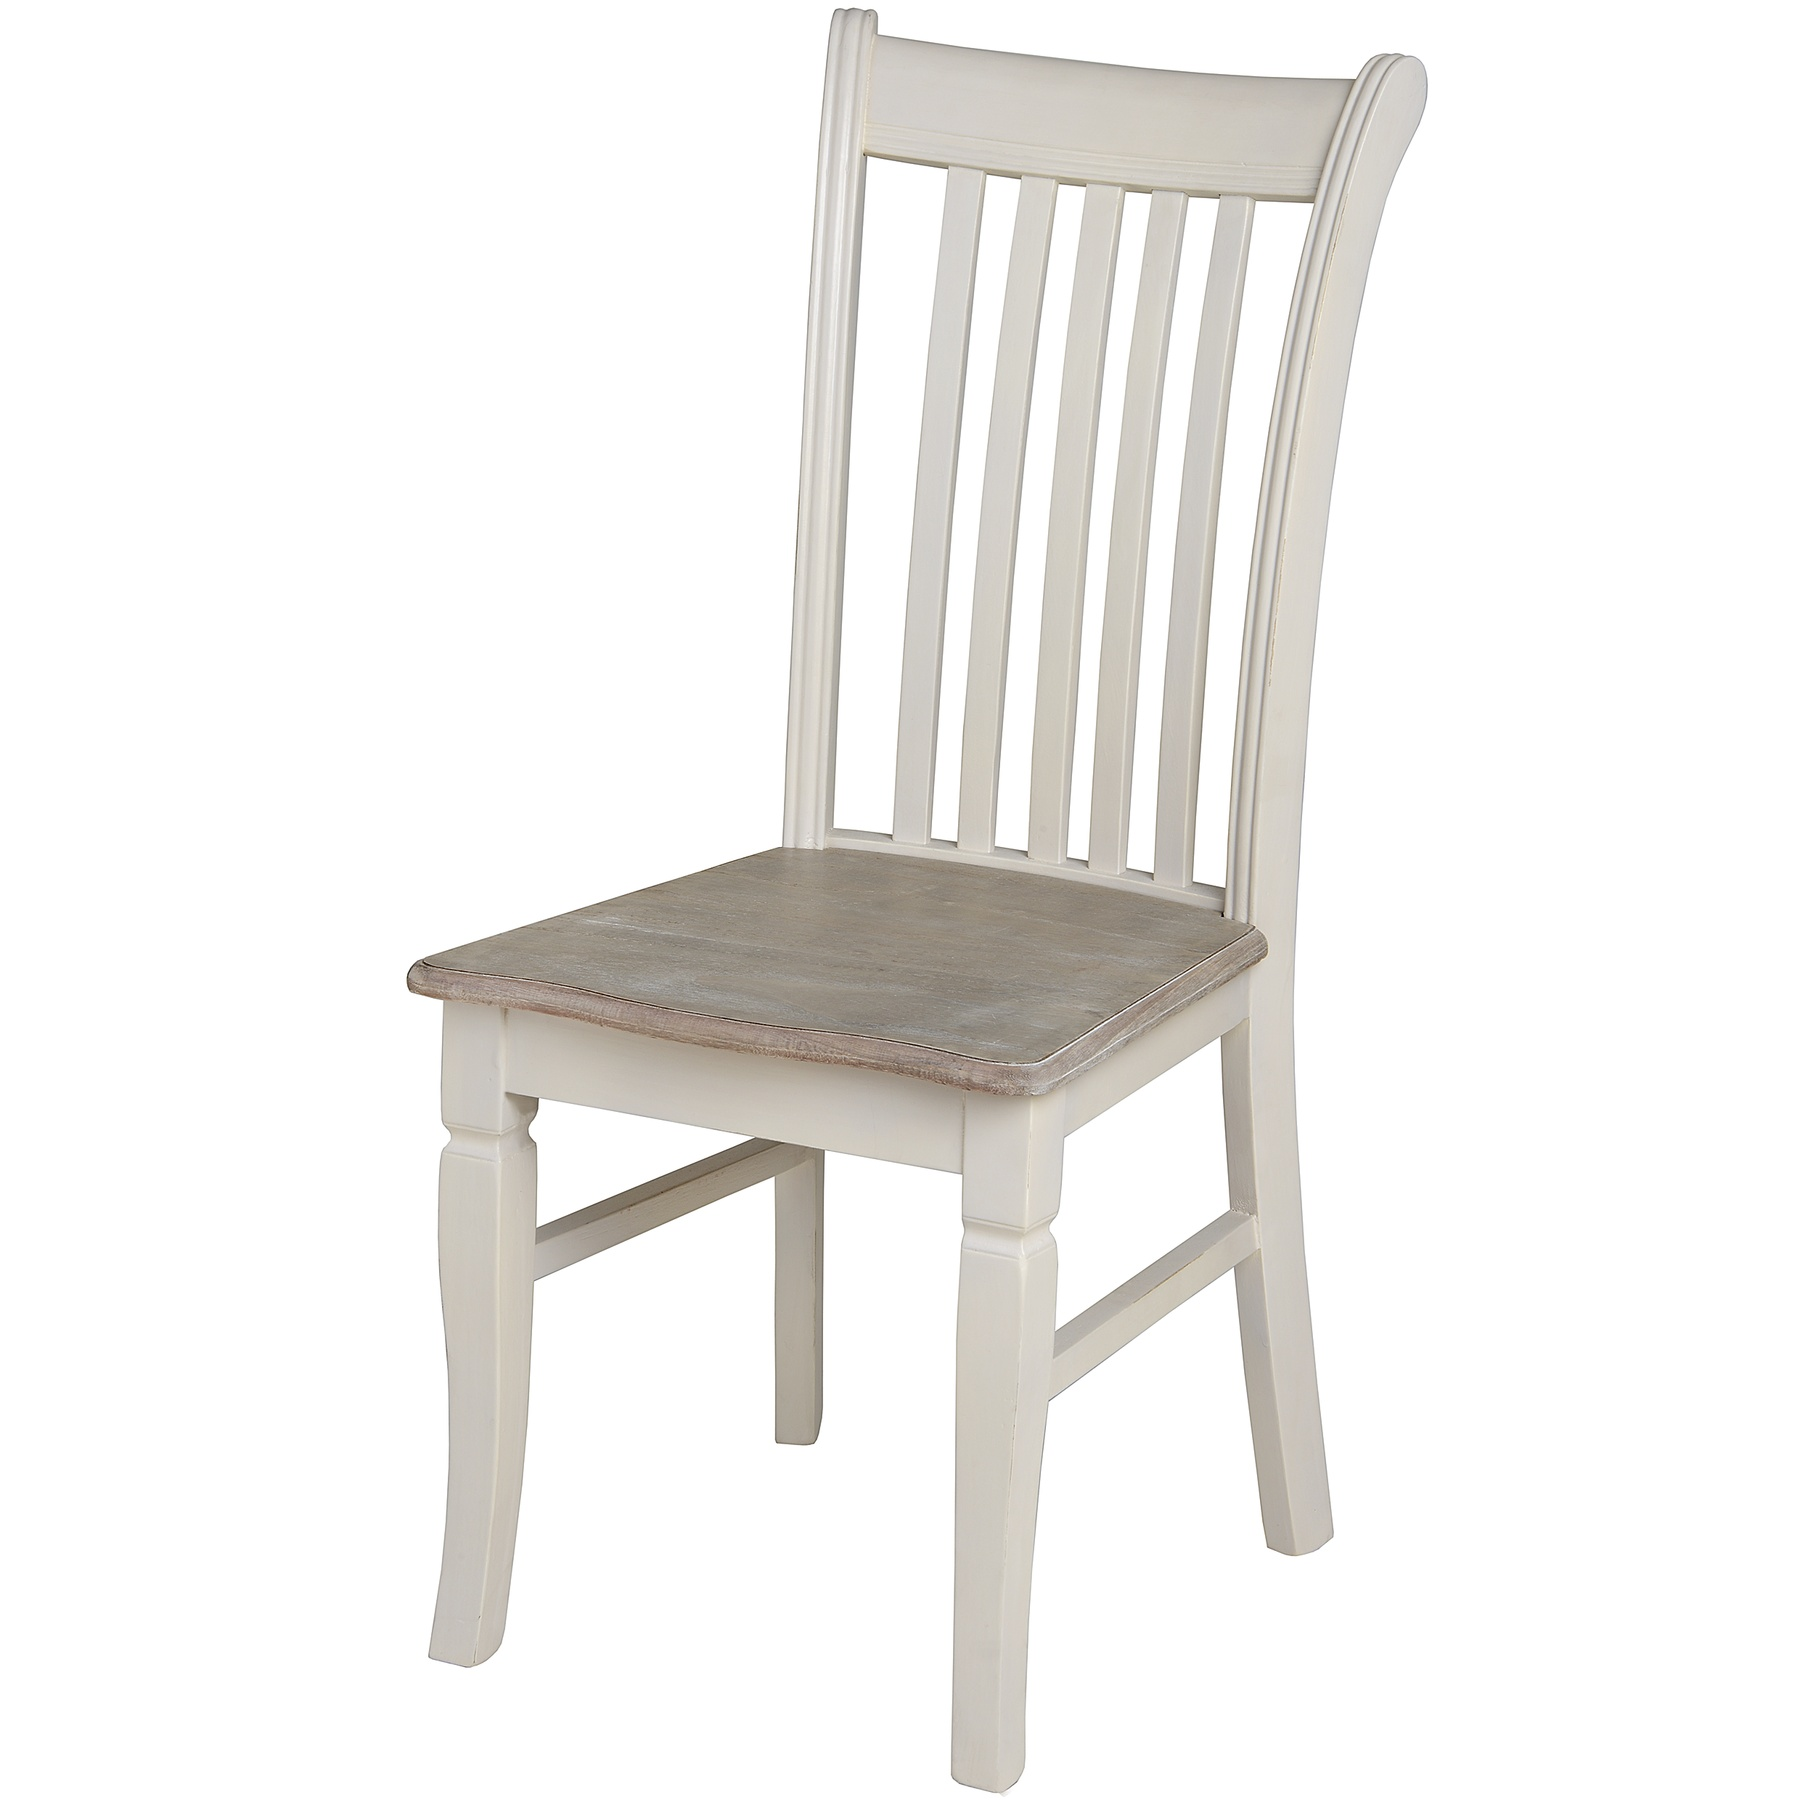 Cream Dining Chair - Lyon Range